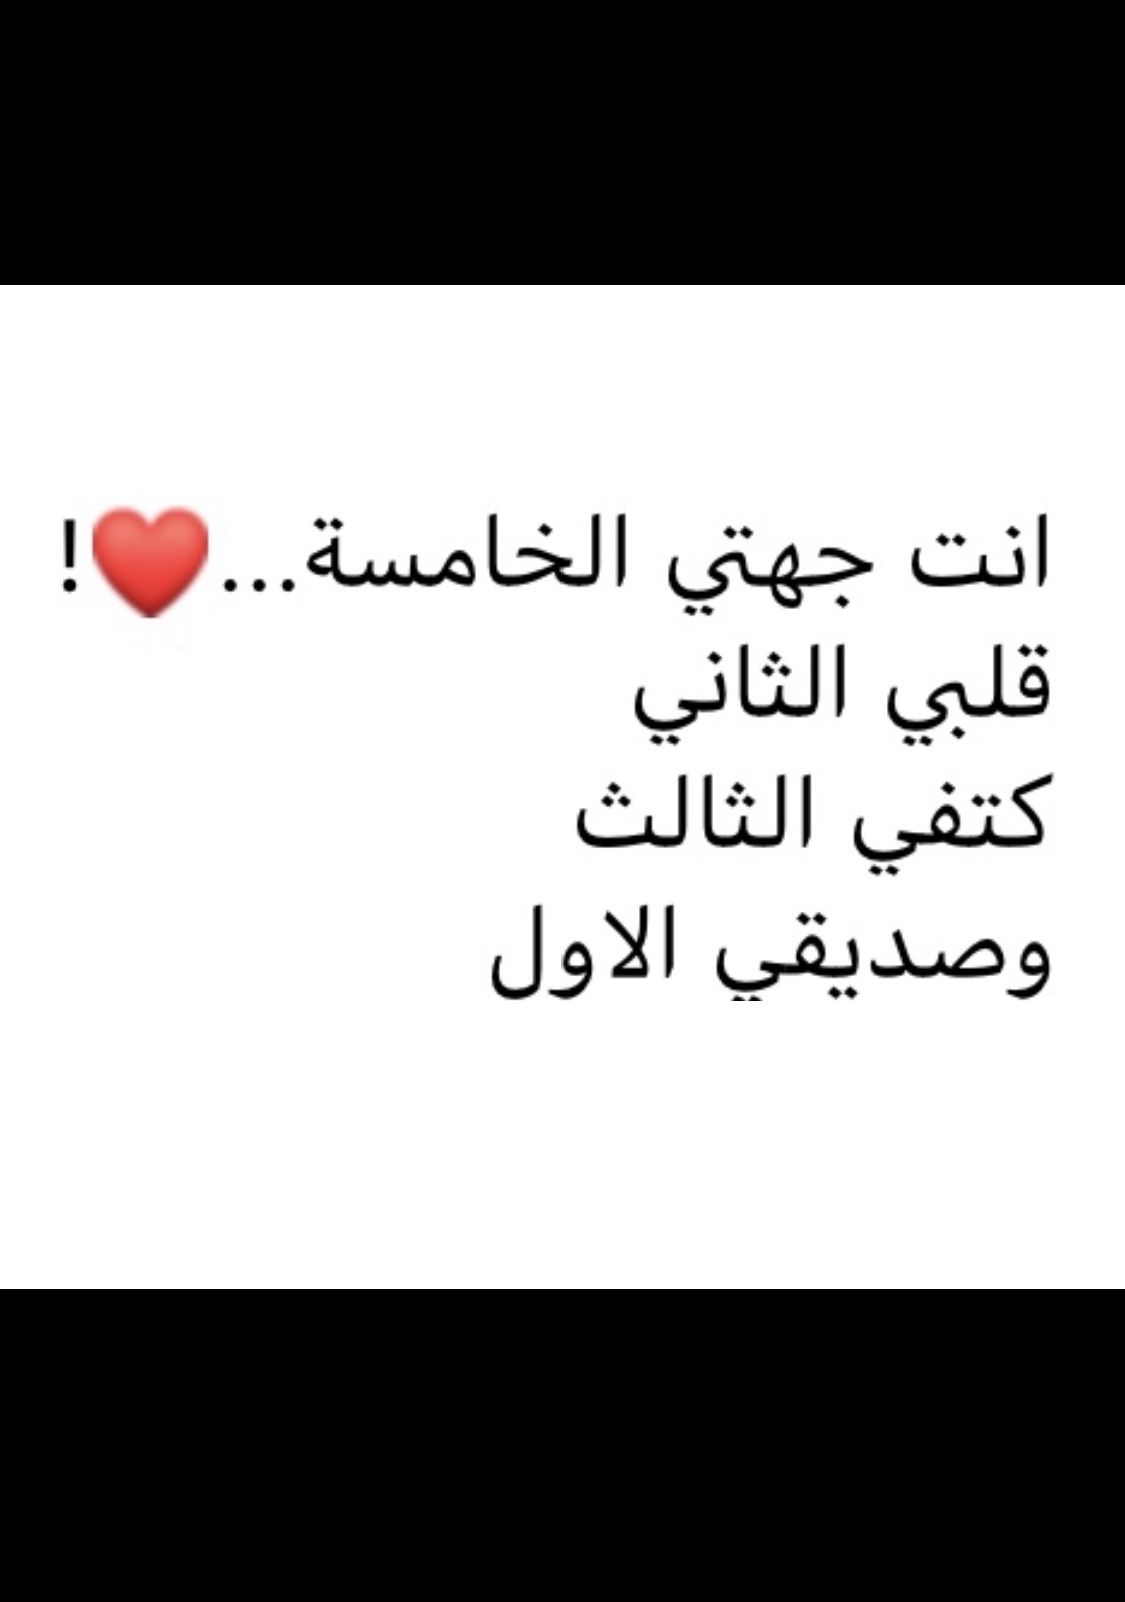 Pin By Bm Alali On بالعربي 5 Words Arabic Words Quotes